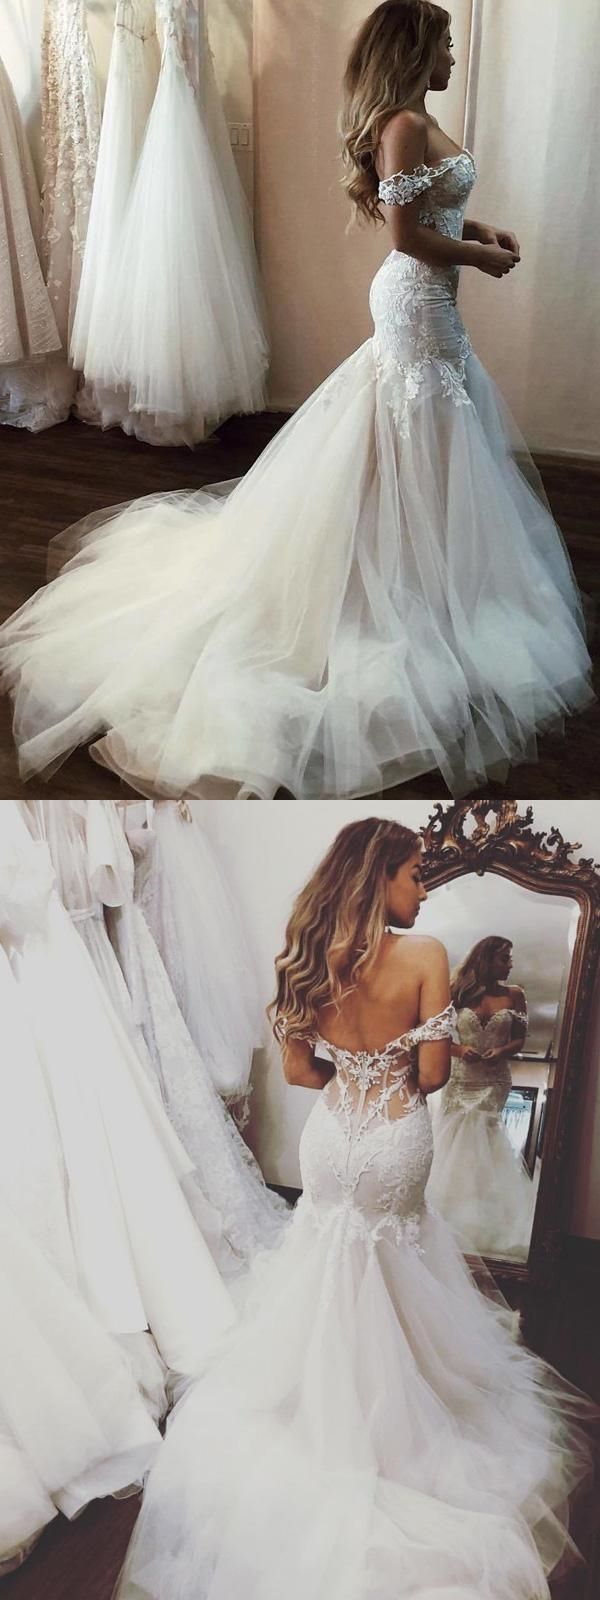 Sexy Mermaid Wedding Dress Off-the-Shoulder… #romanceornot?